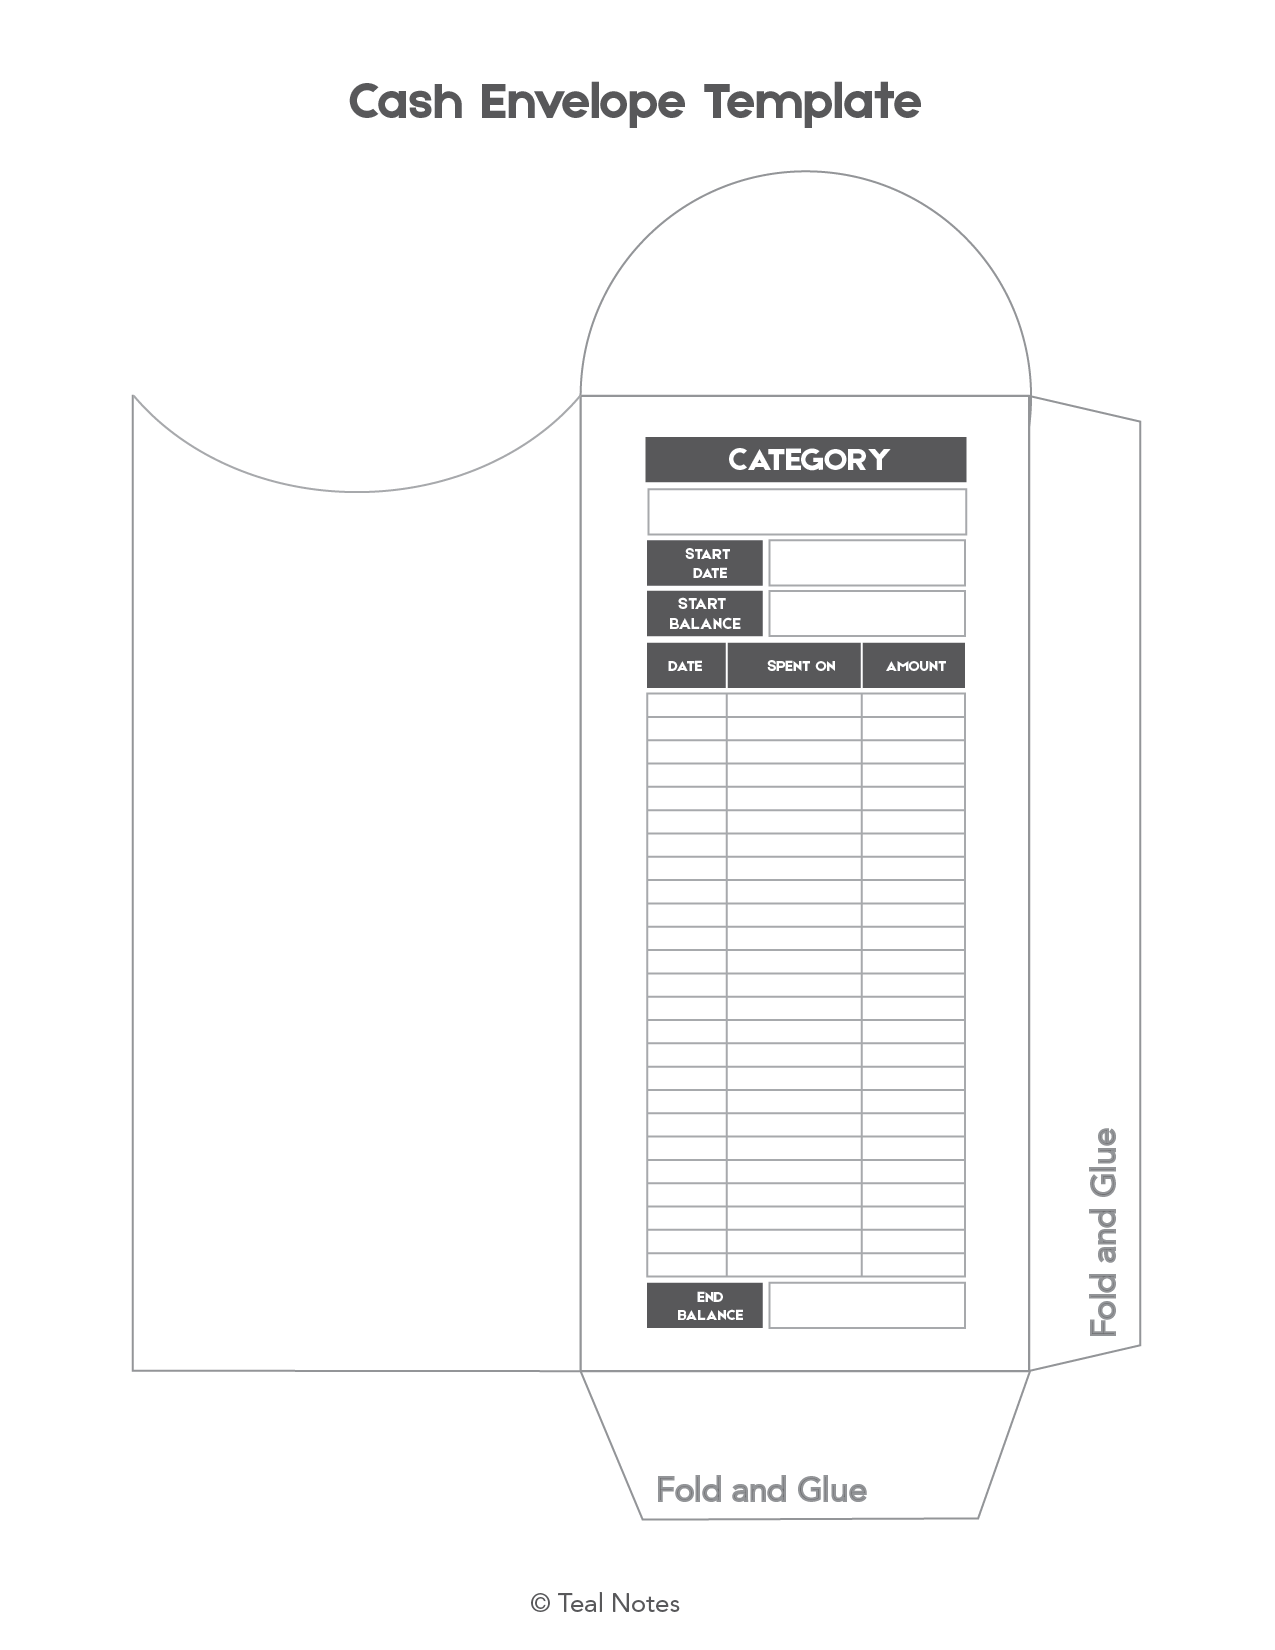 Free Cash Envelope Template This Is How You Use A Cash